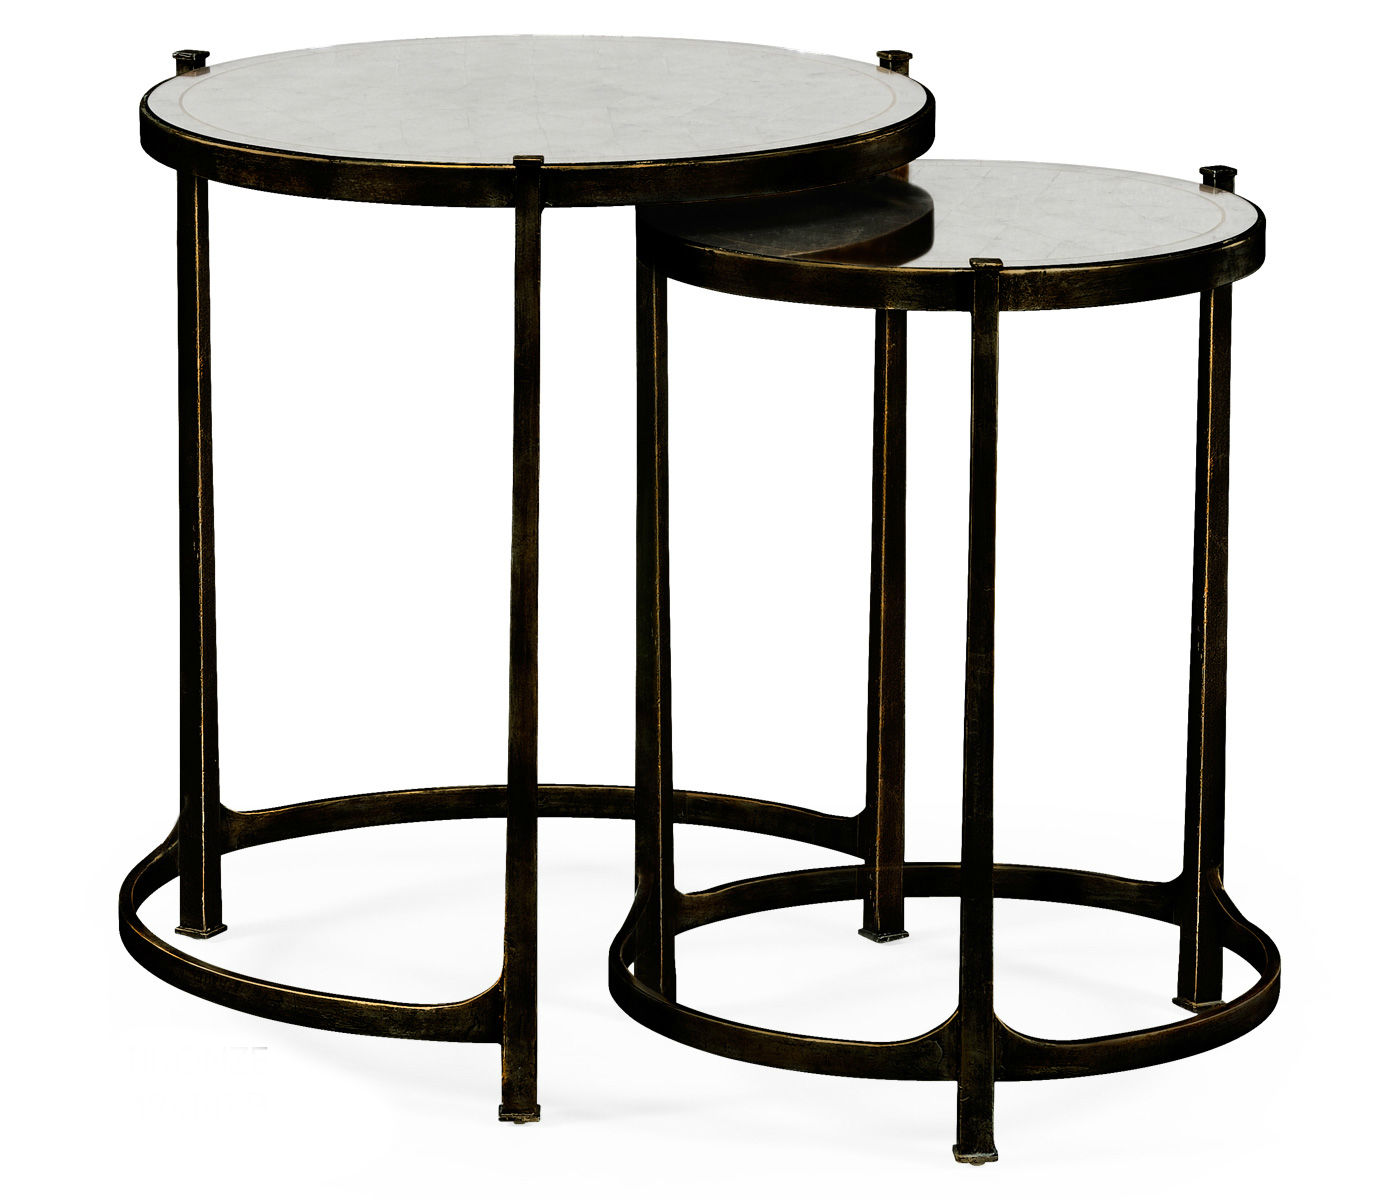 nesting tables iron bronze side table accent elegant tall antiqued mirrored partner end console coffee available hospitality ashley furniture sofa dining area vintage oriental